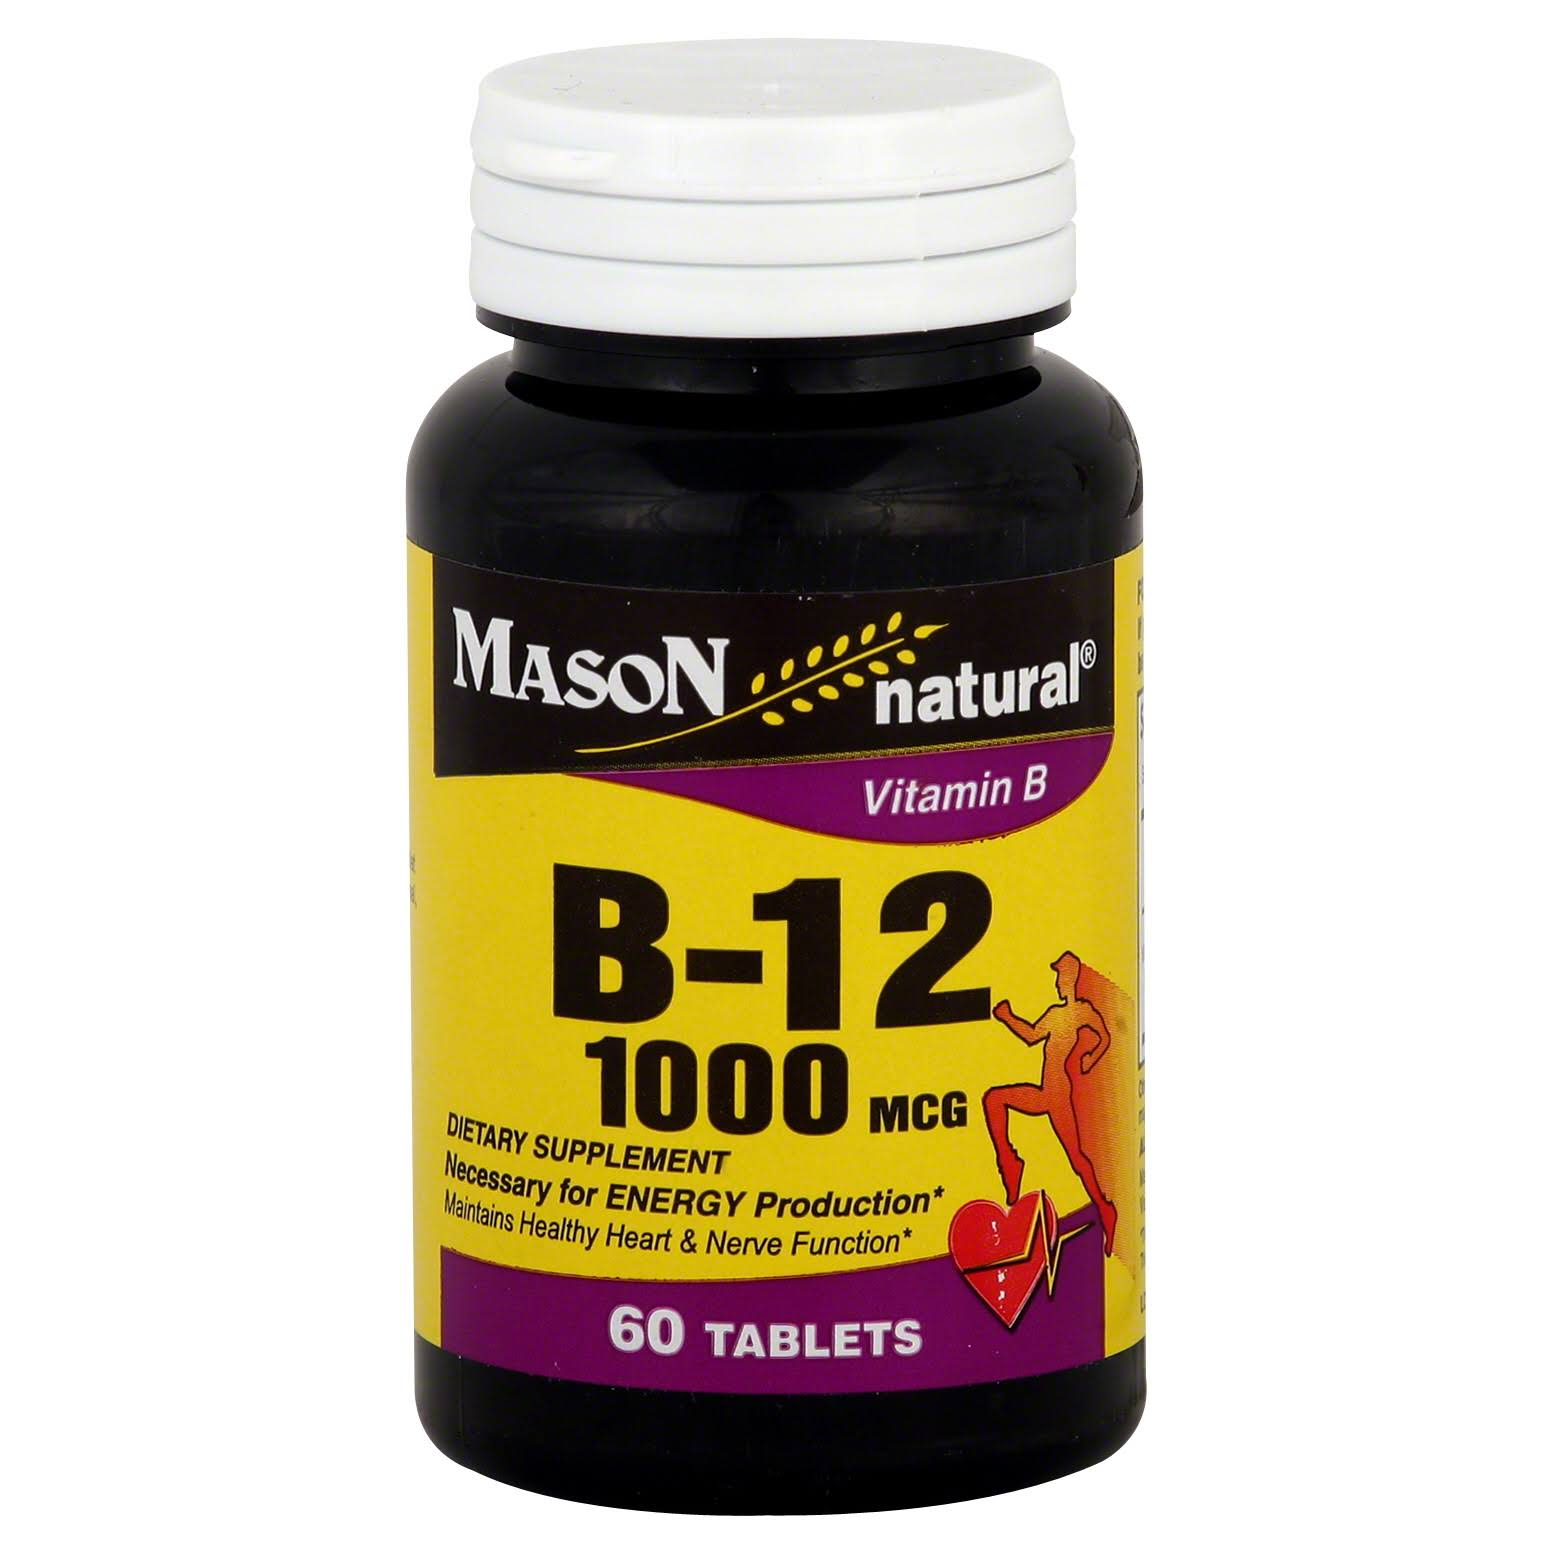 Mason Naturals Vitamin B-12 Dietary Supplement - 1000mcg, 60 Count